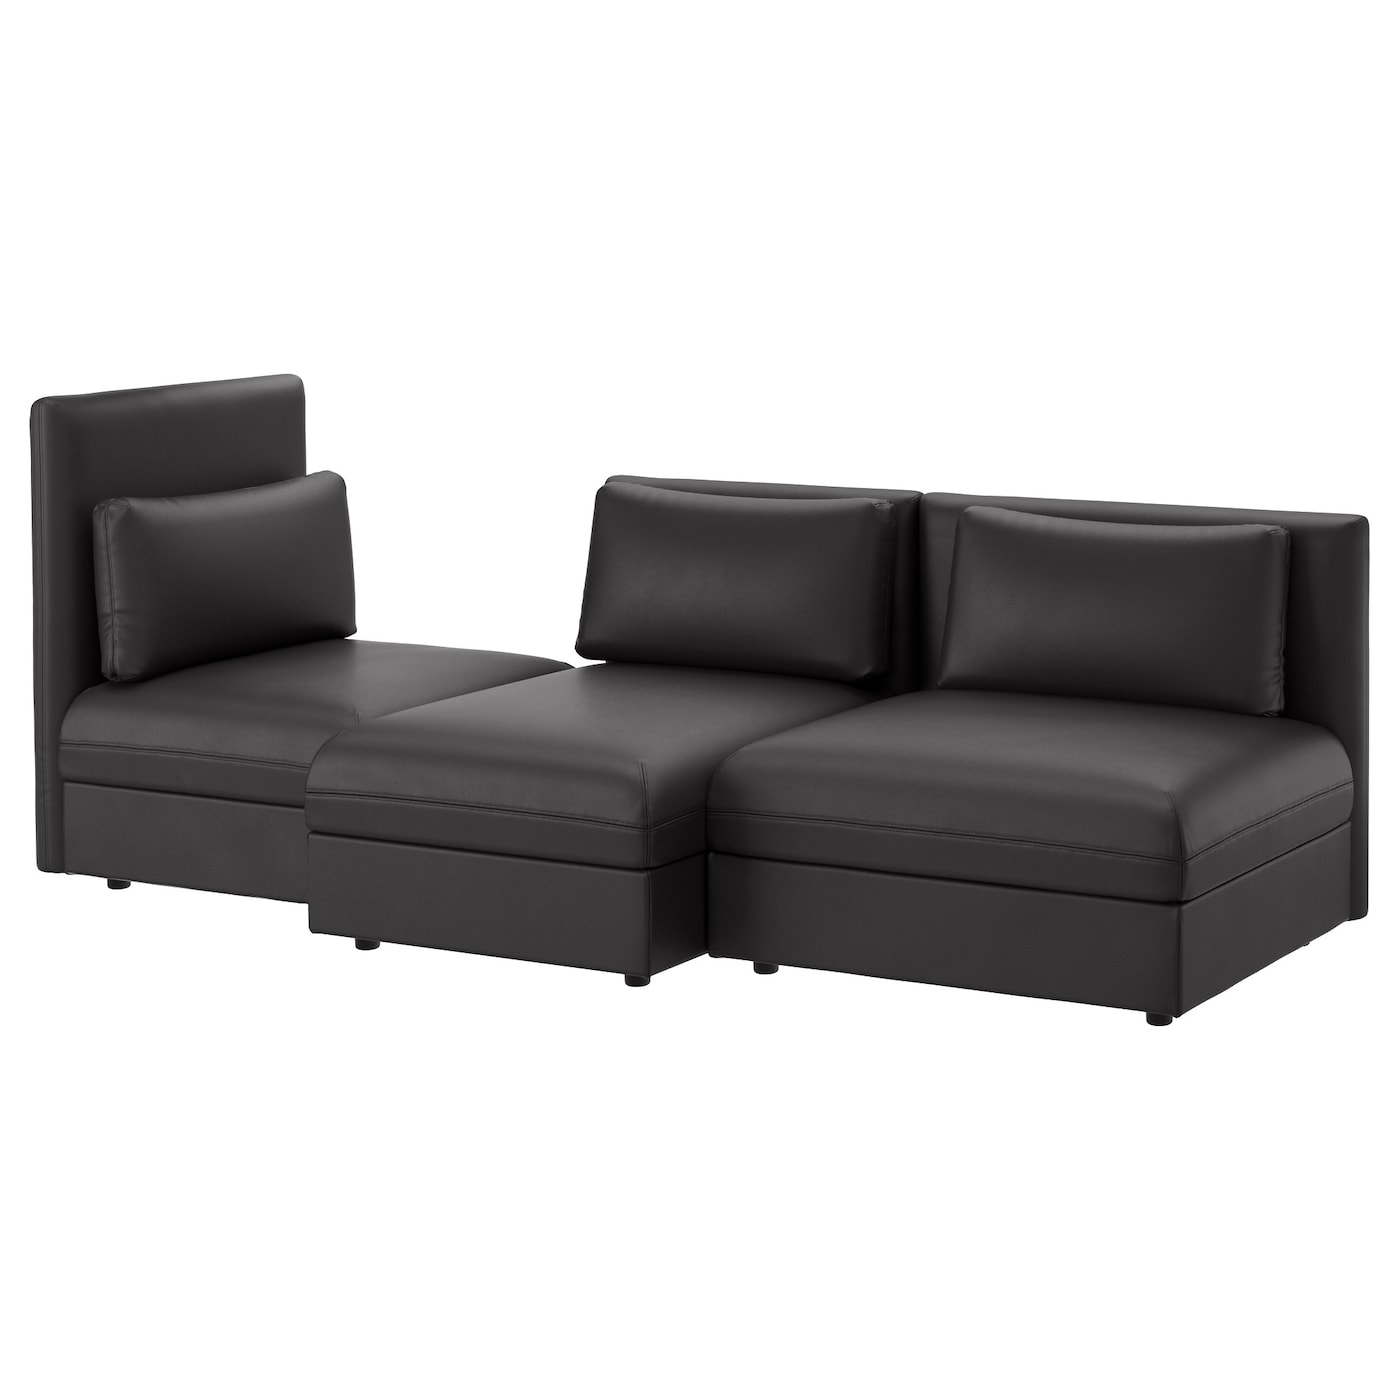 IKEA VALLENTUNA 3-seat sofa 10 year guarantee. Read about the terms in the guarantee brochure.